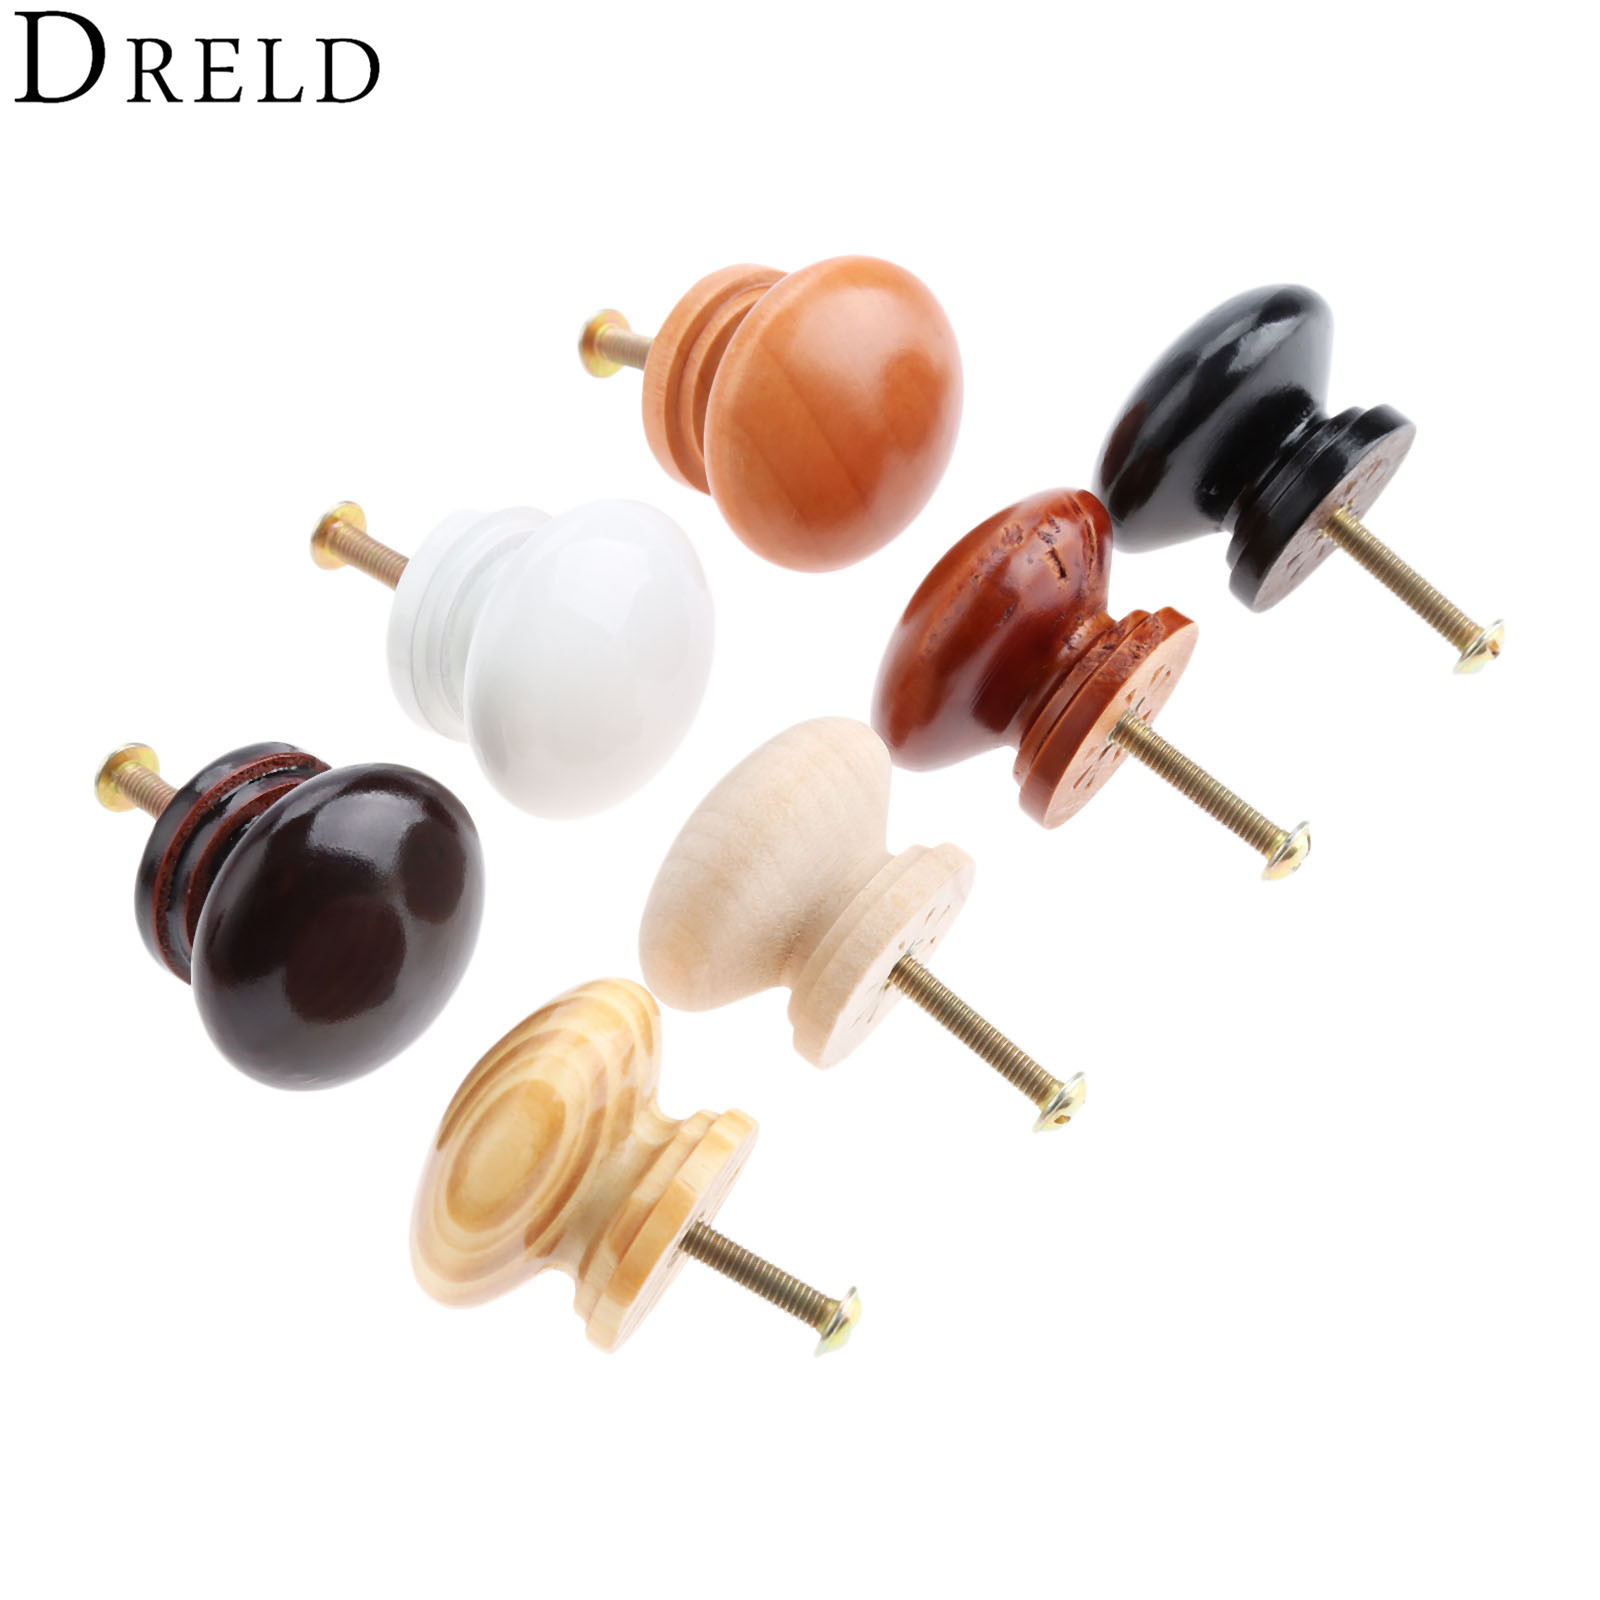 DRELD 5Pcs 34*25mm Wooden Furniture Handles Wood Cabinet Knobs and Handles Kitchen Drawer Wardrobe Door Pulls Furniture Hardware 5pcs vintage furniture door handle pulls antique drawer wardrobe closet cabinet knobs and handles cc 85mm